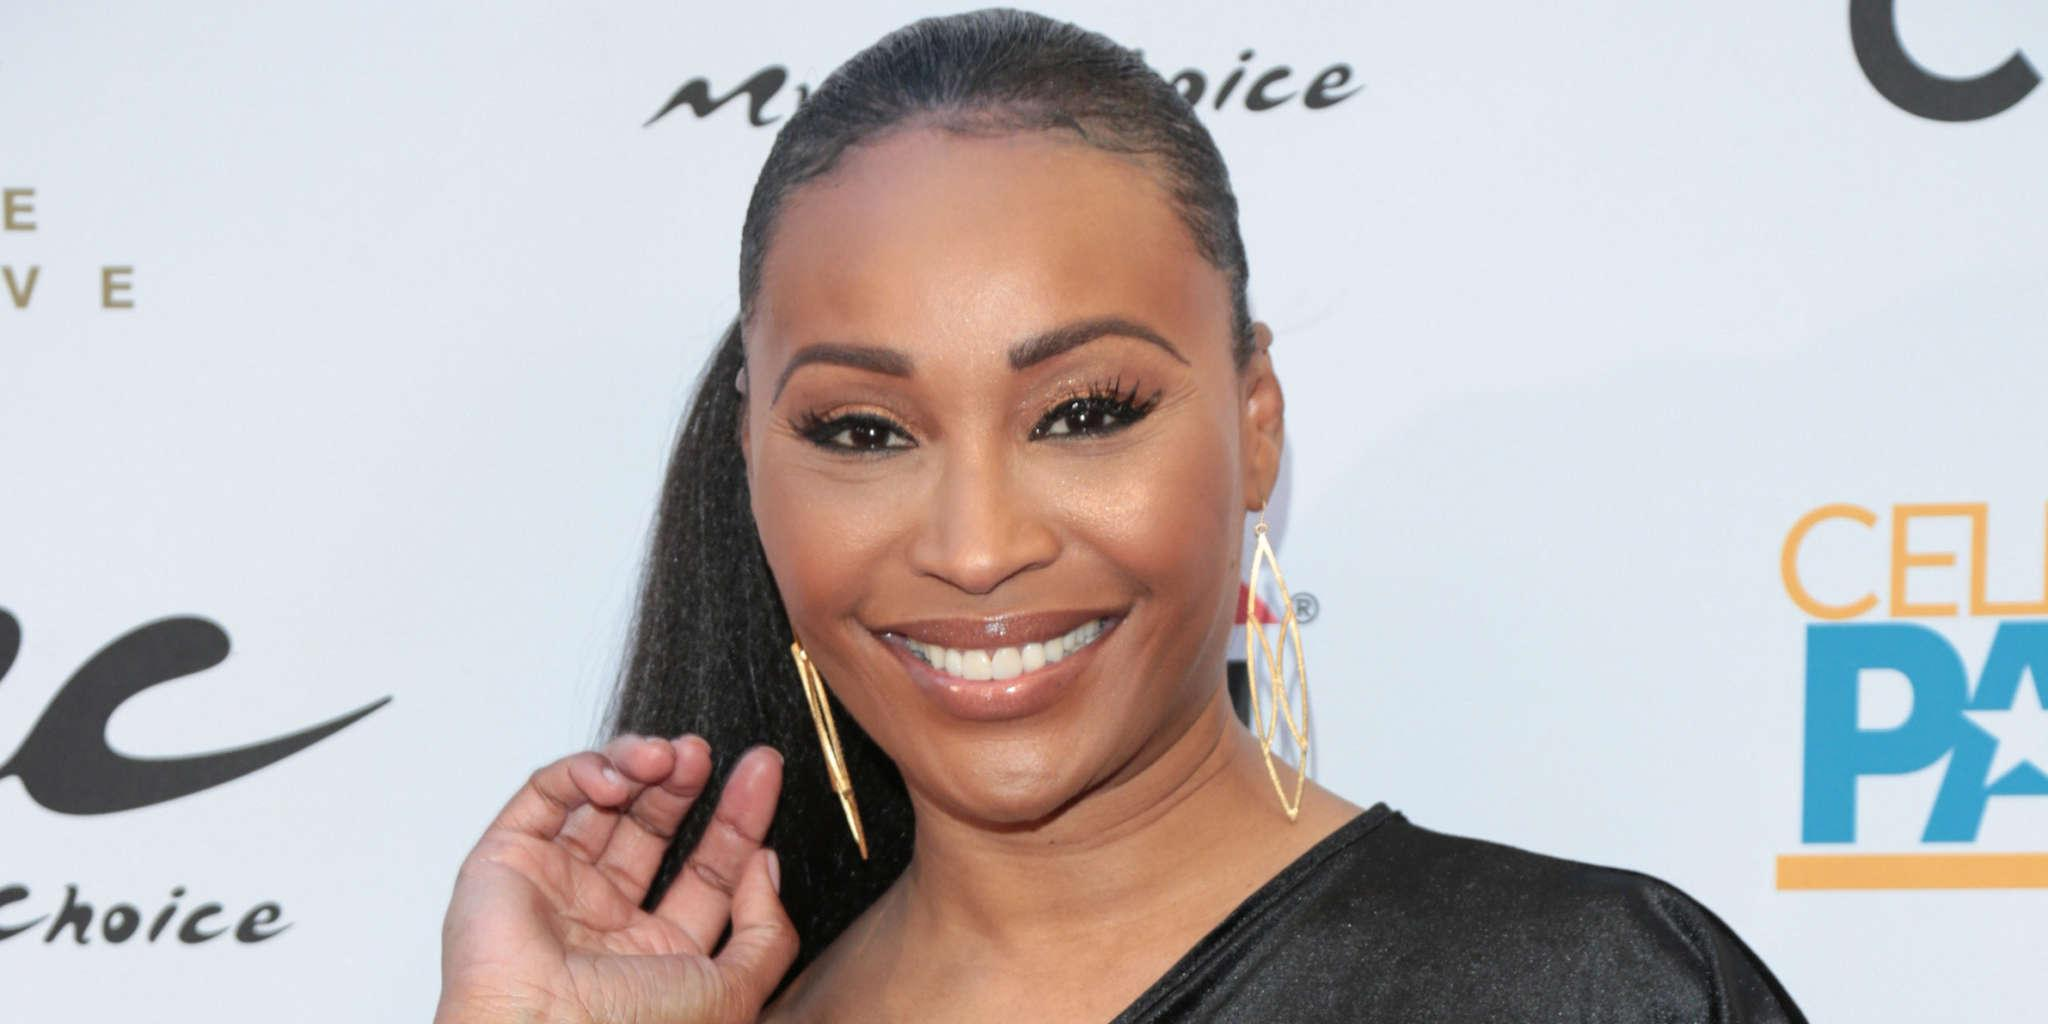 Cynthia Bailey Uses Her Platform To Raise Awareness About An Important Murder Case On Social Media